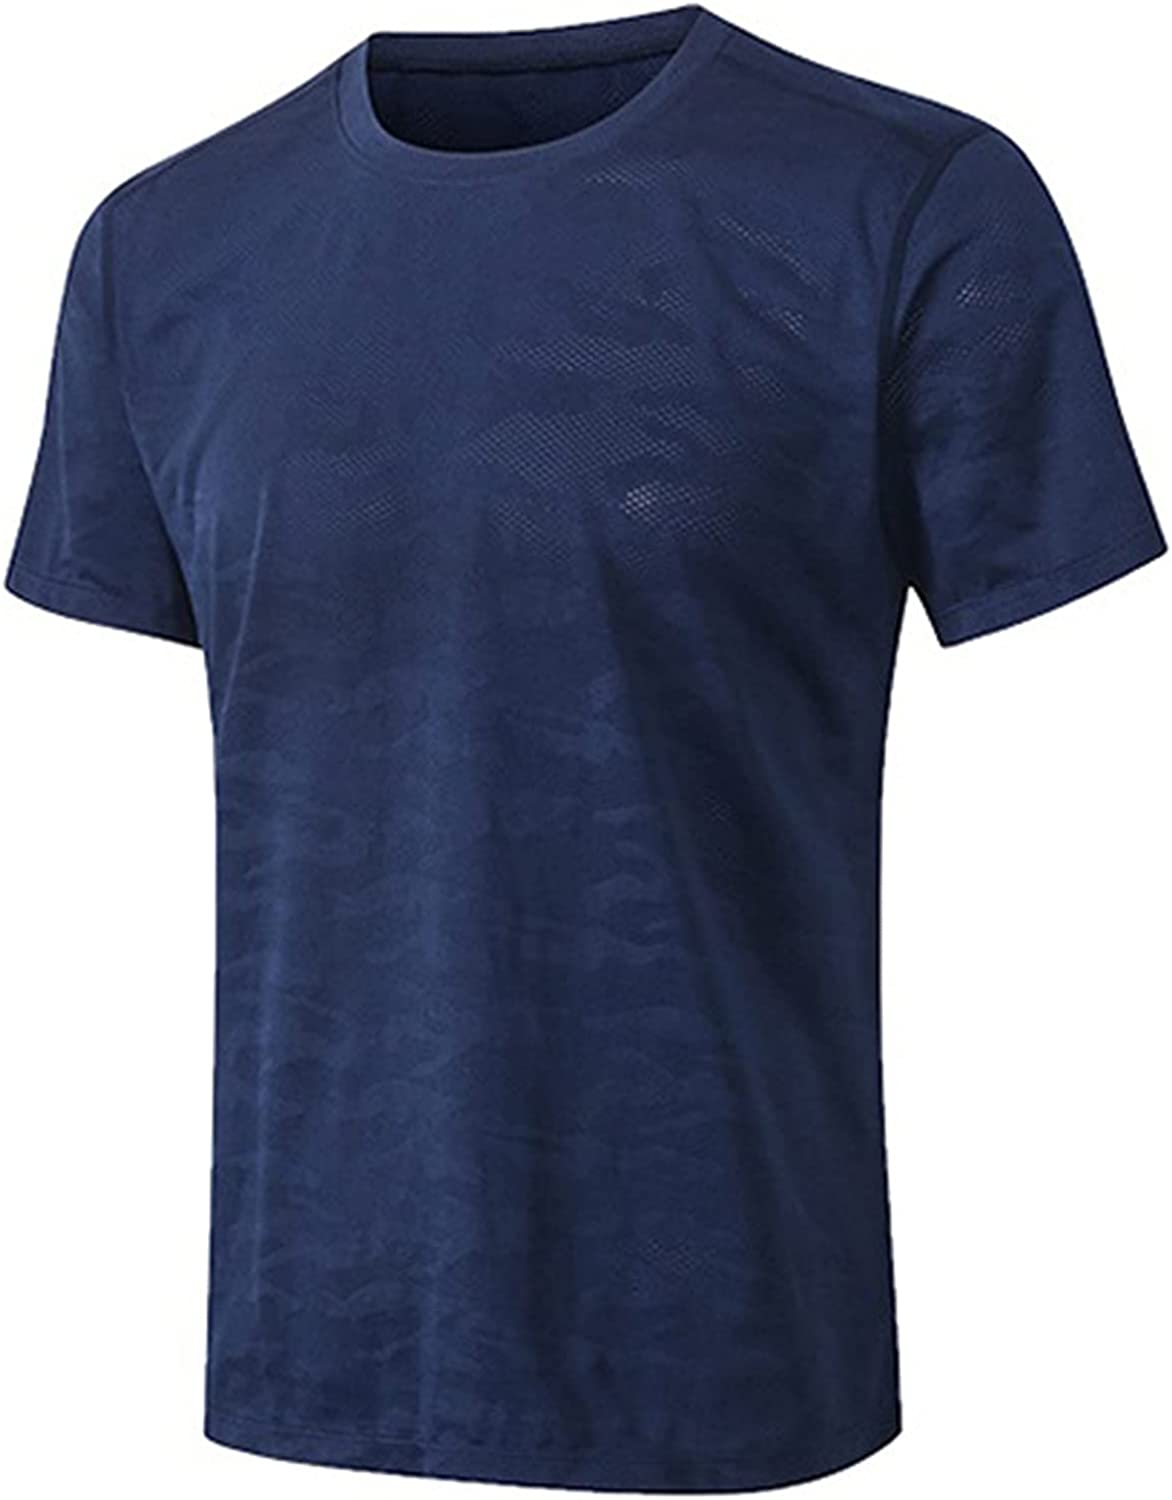 Men's Workout Athletic T-Shirts Quick Dry Lightweight Muscle Shirts Casual Workout Tee